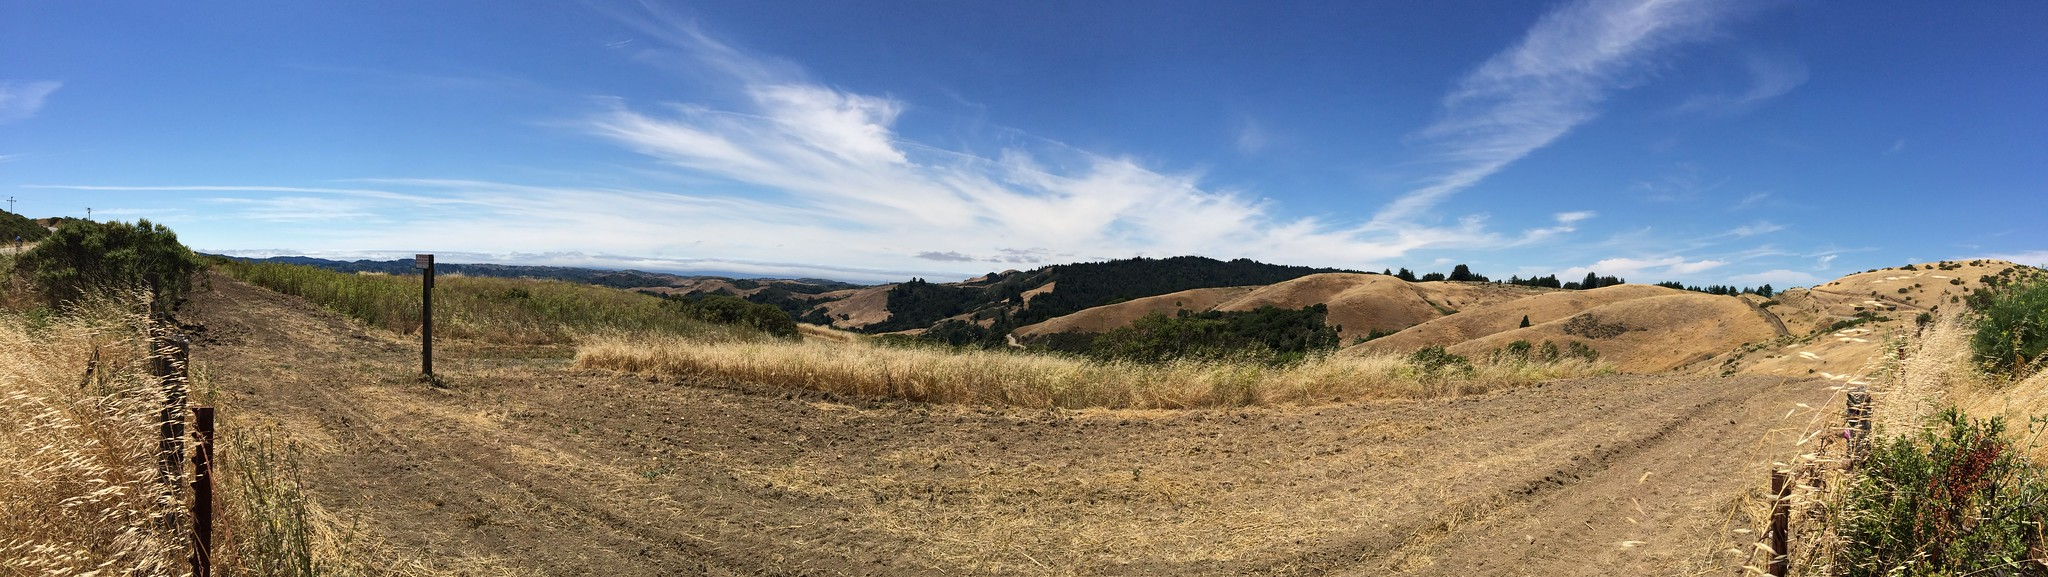 Windy Hill on Skyline. #panorama